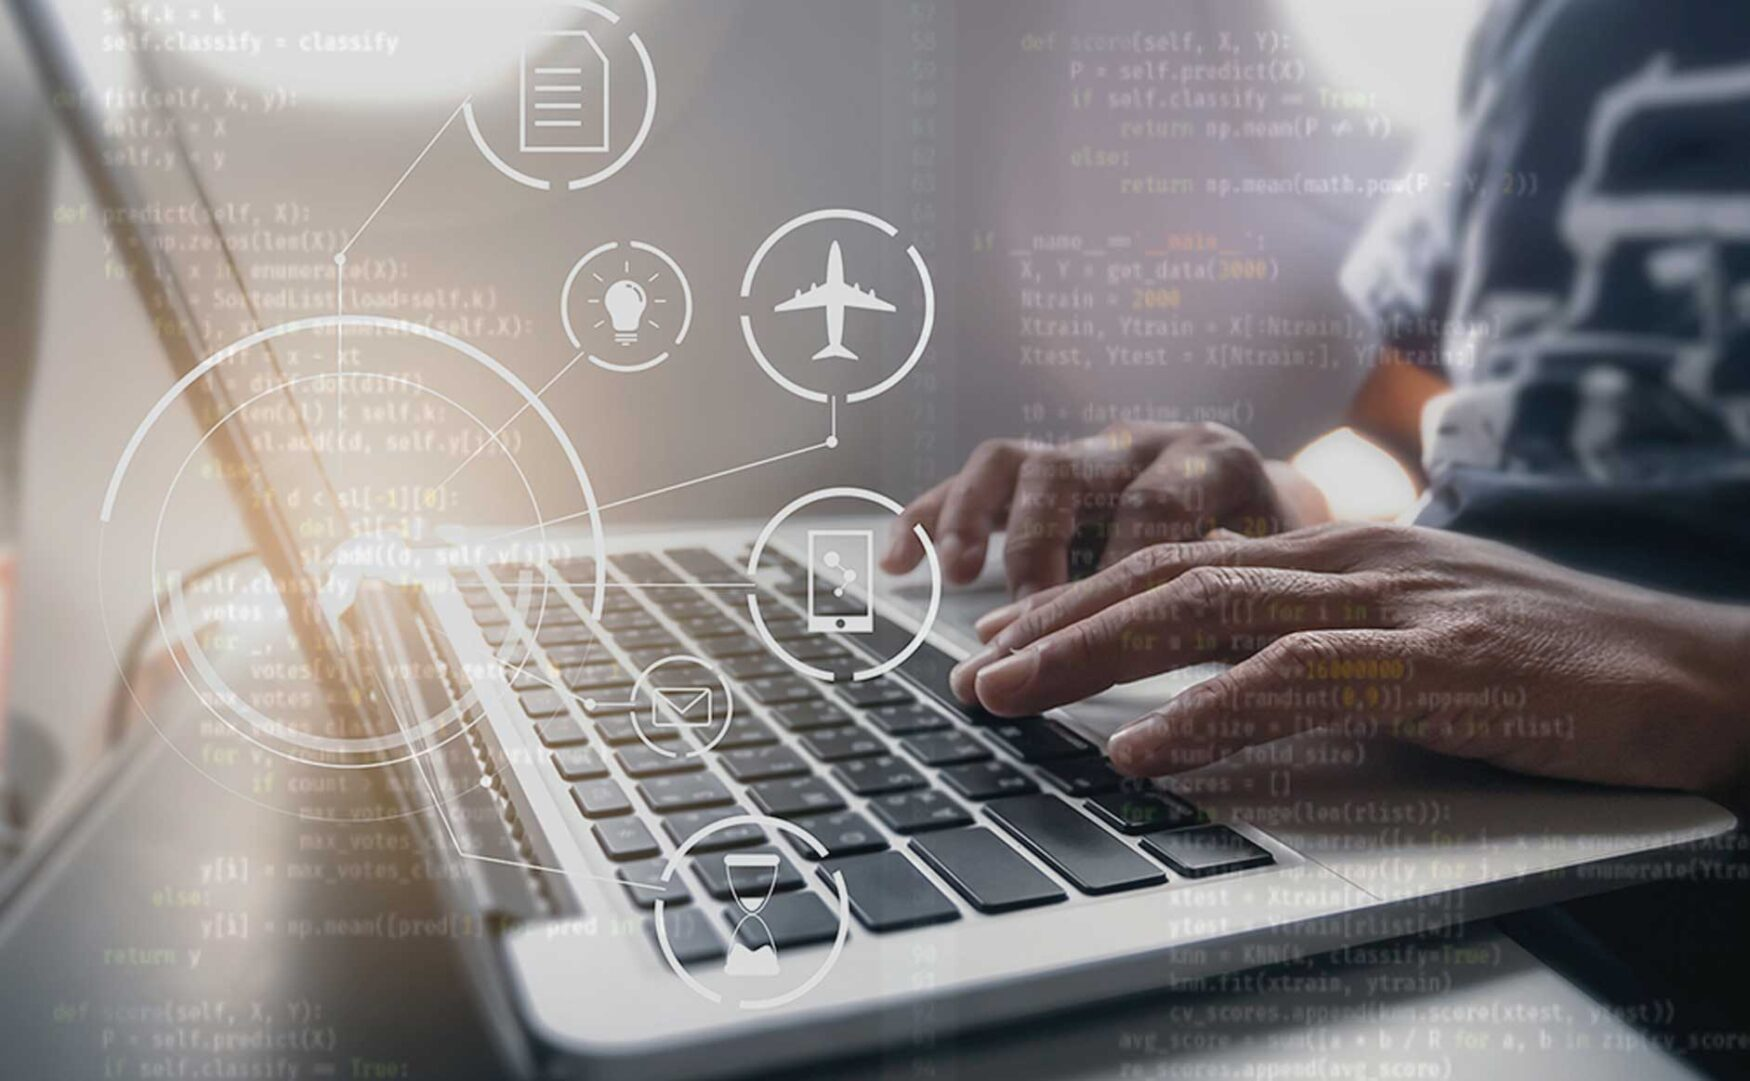 Software development for airlines and airports